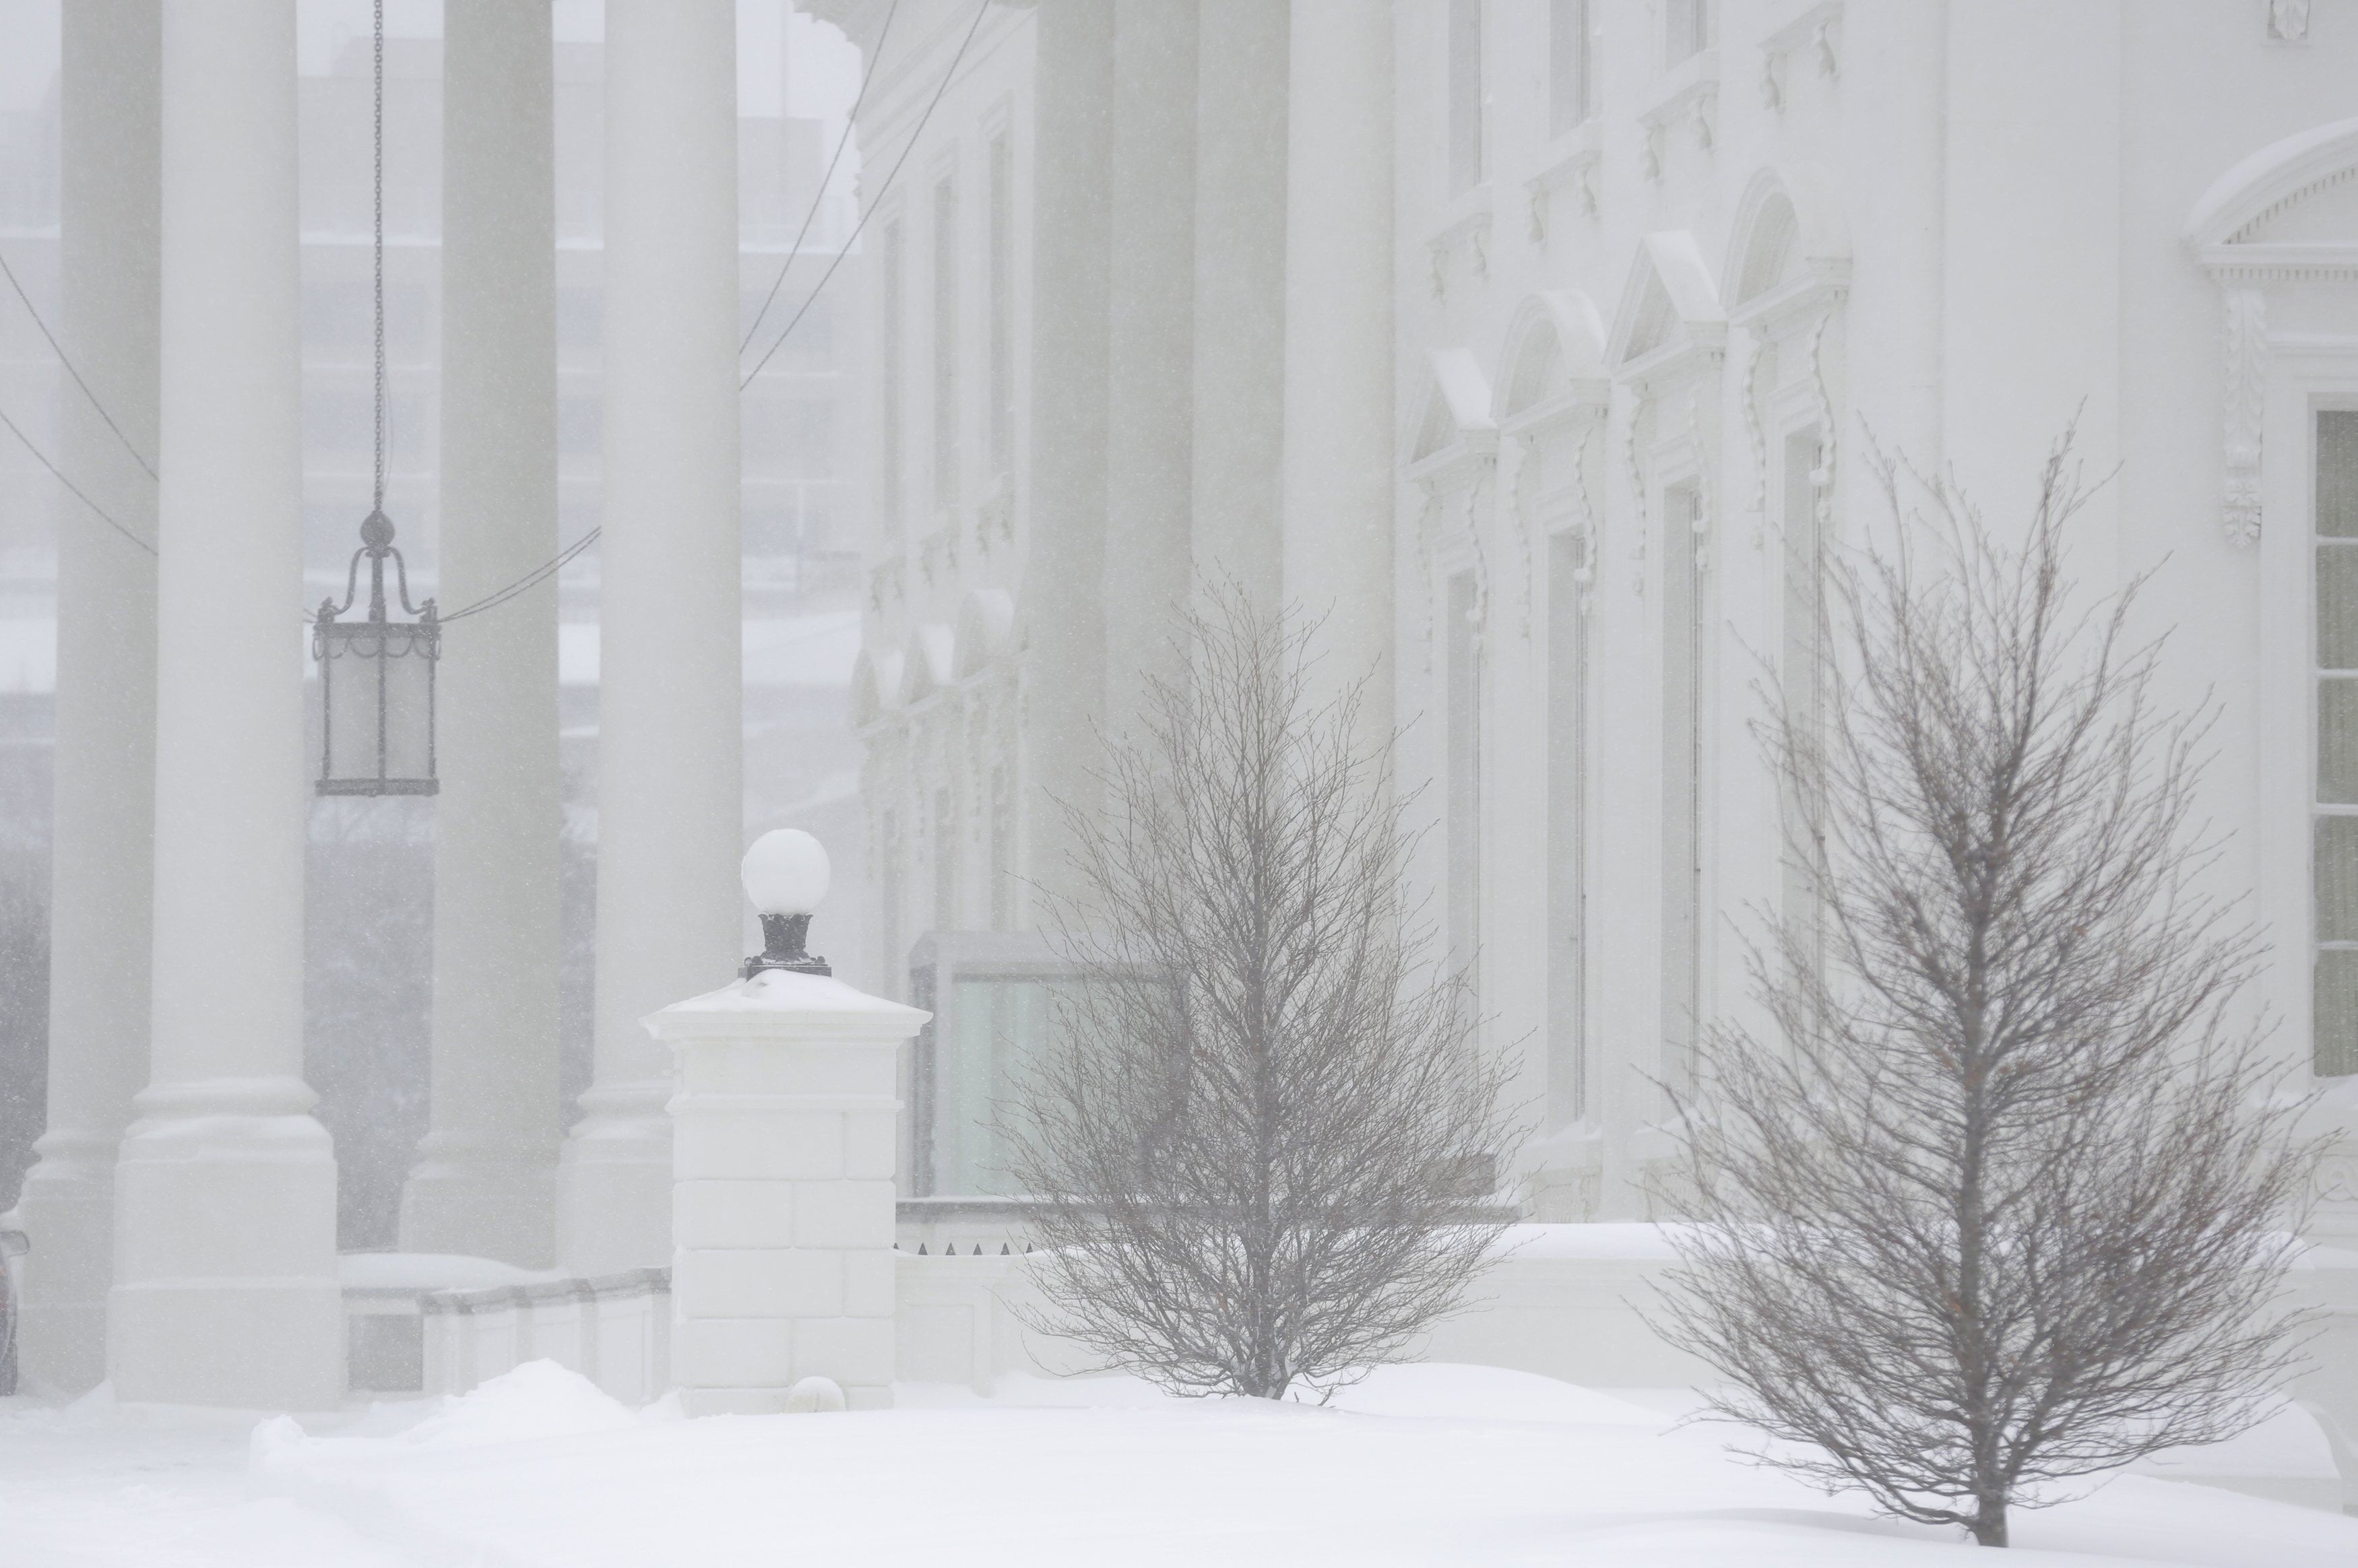 The White House grounds are covered in snow during a winter storm in Washington